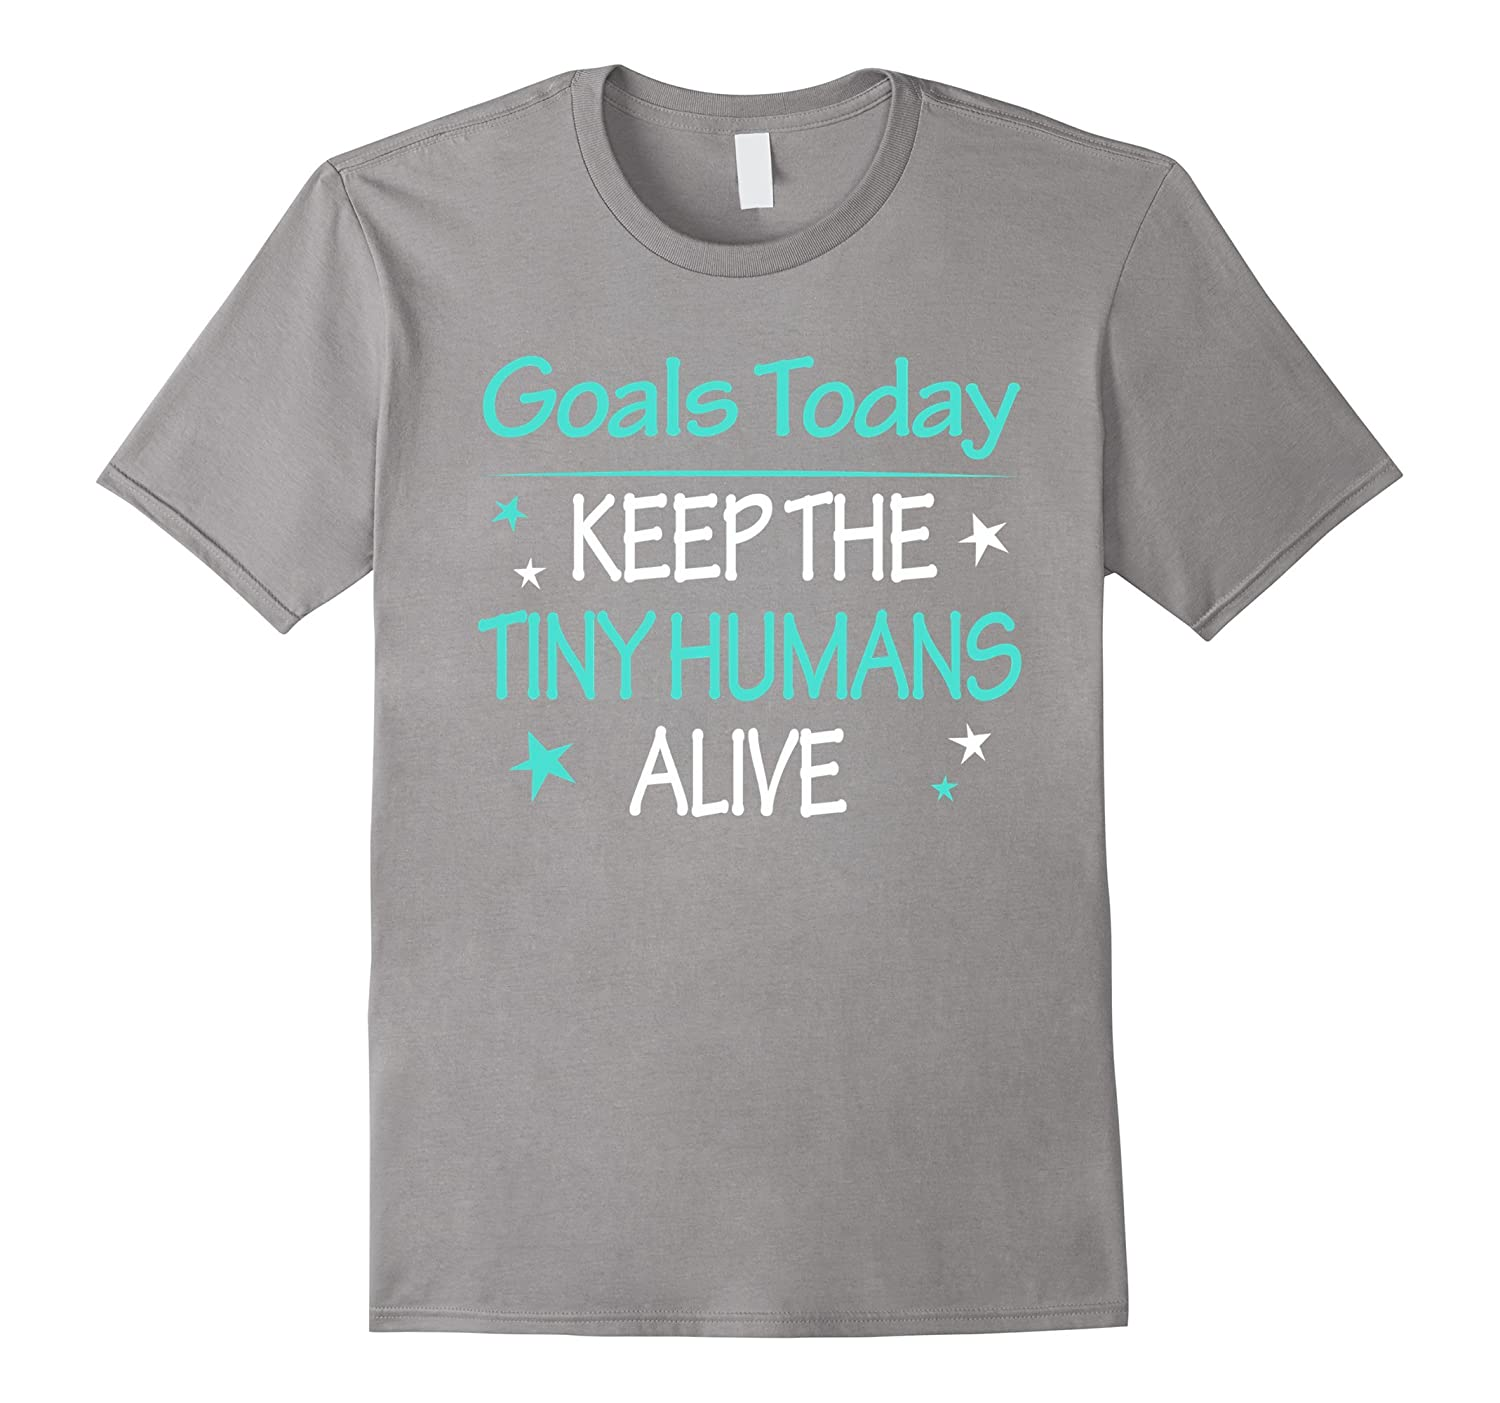 Goals today keep the tiny humans alive tshirts-TD